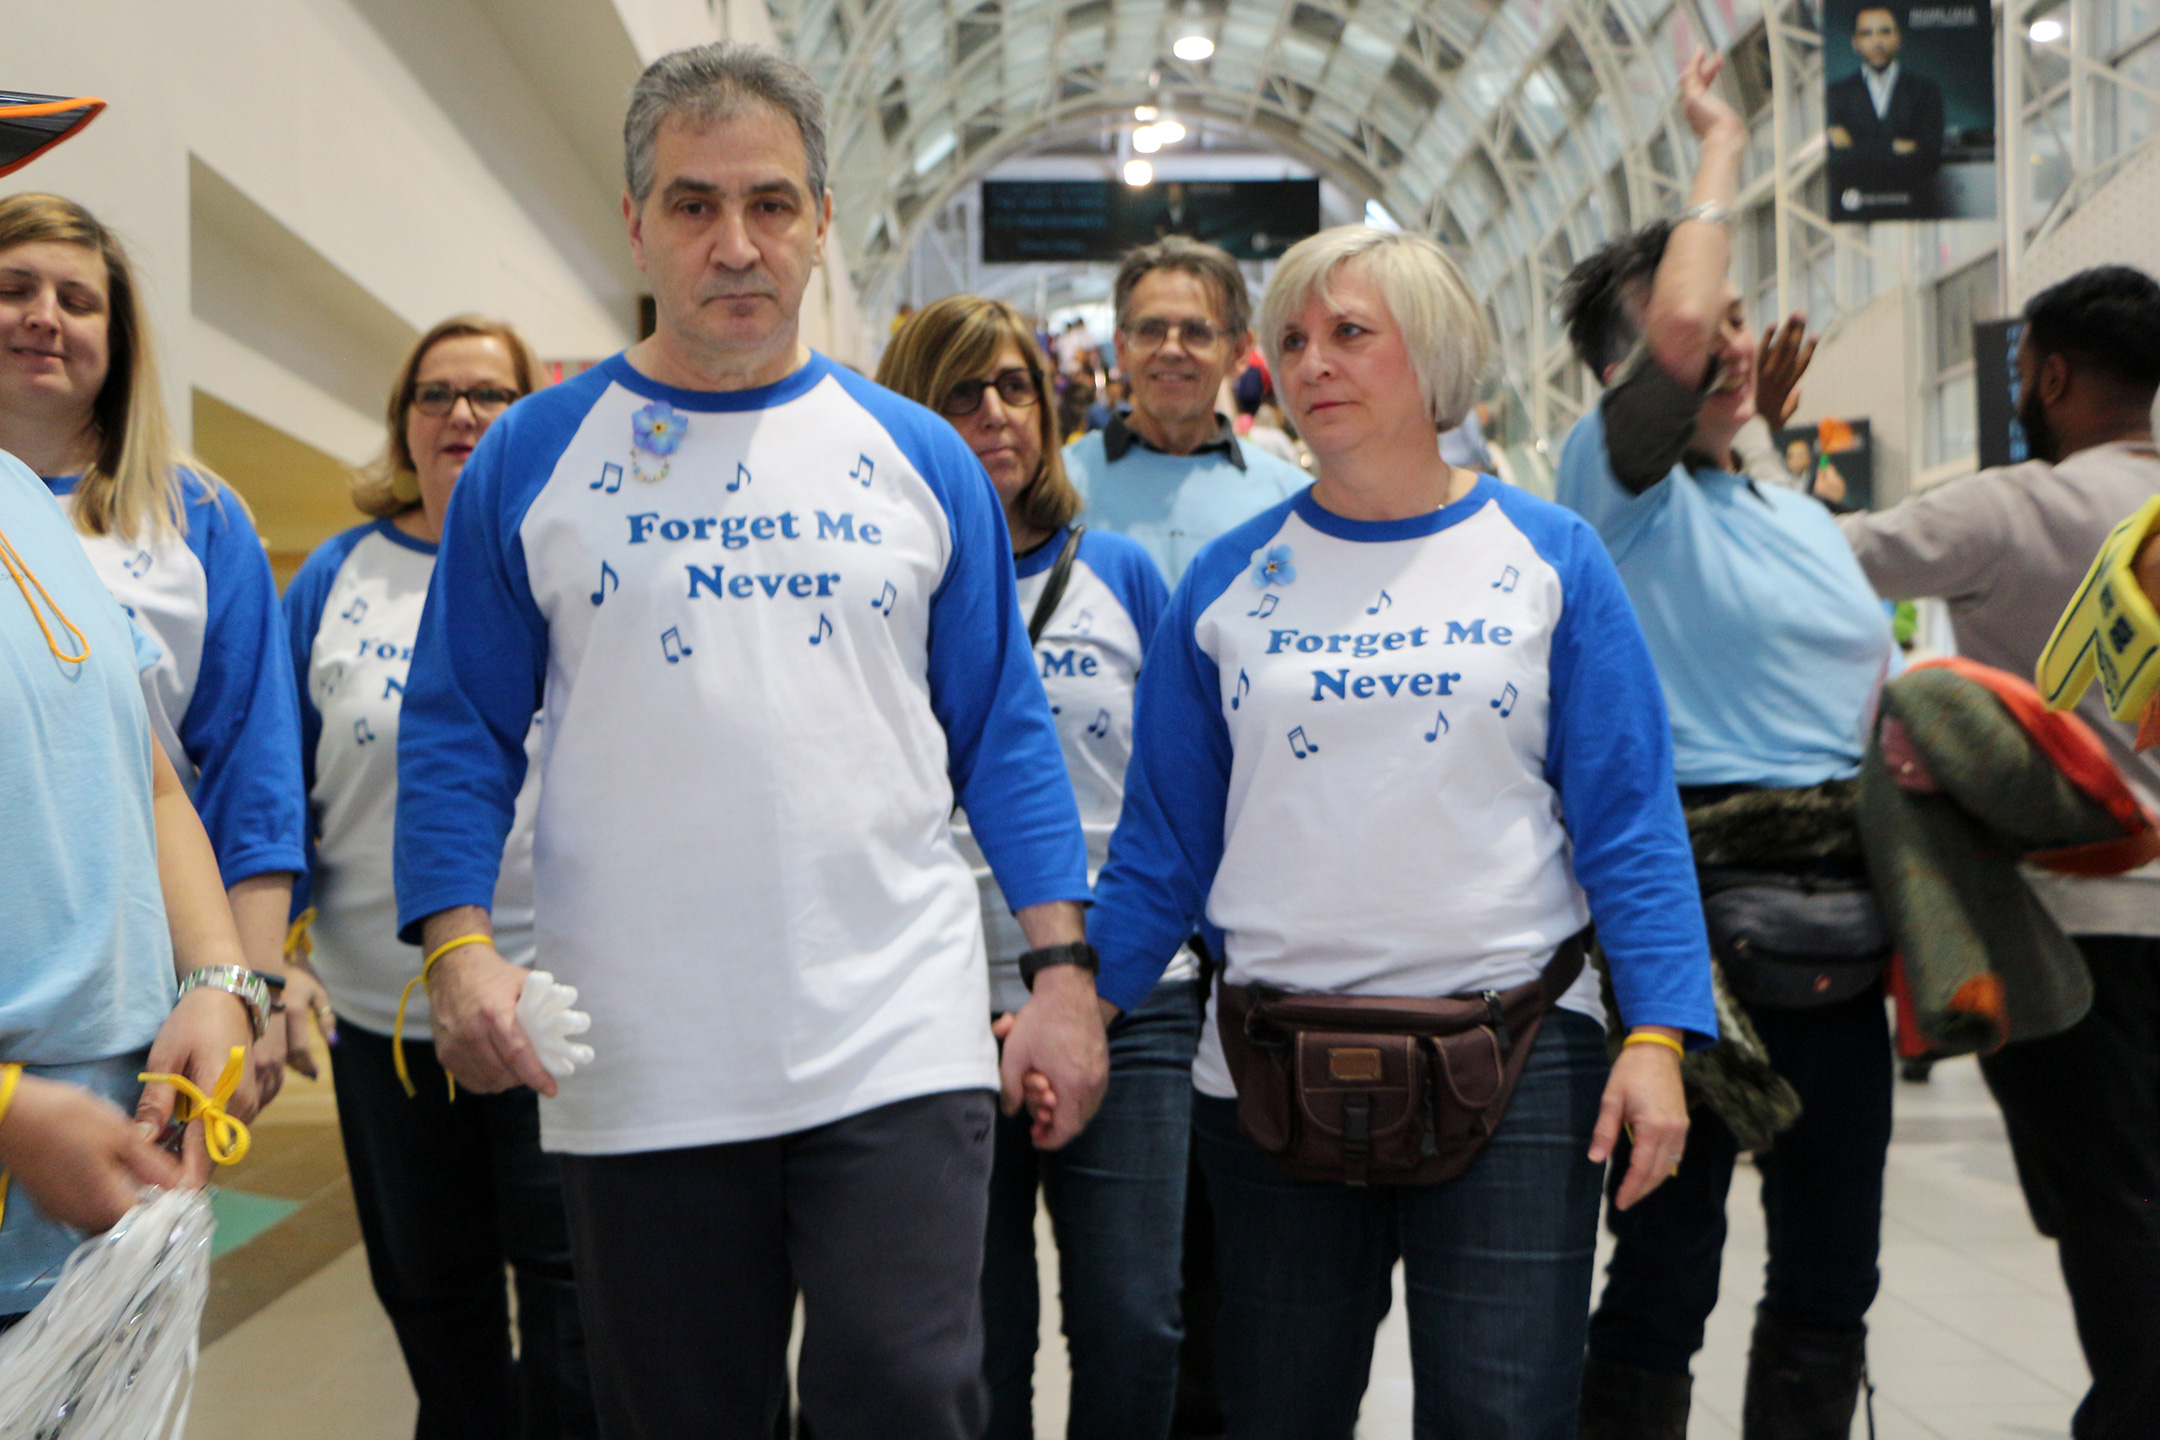 Susan & Sheldon Abramovitch at the 2017 Walk for Memories in Toronto, Canada.